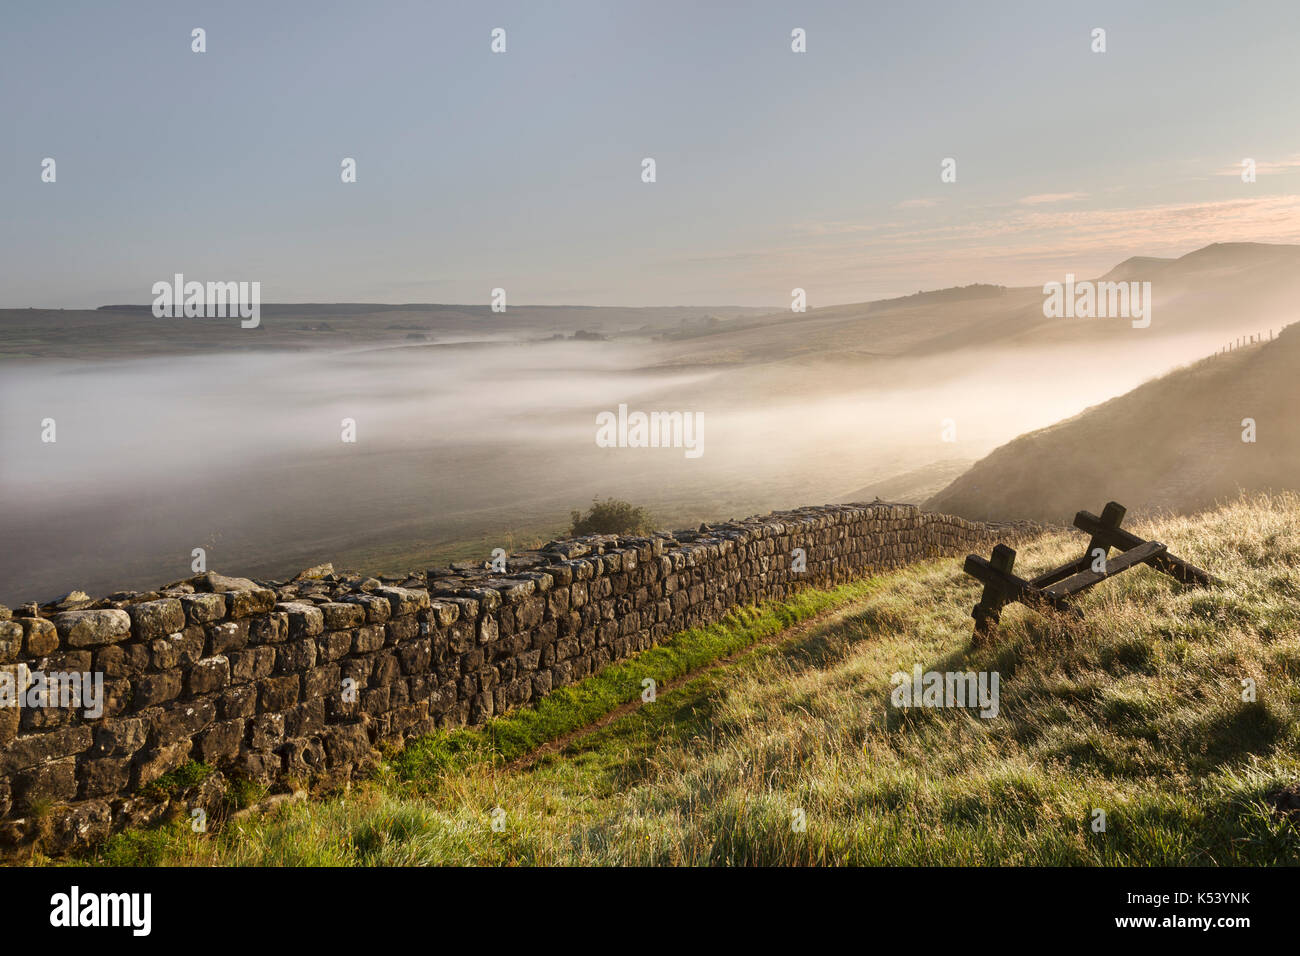 Hadrian's Wall, Northumberland, England - looking north-east as early morning mist hangs over low ground near Cawfield - Stock Image